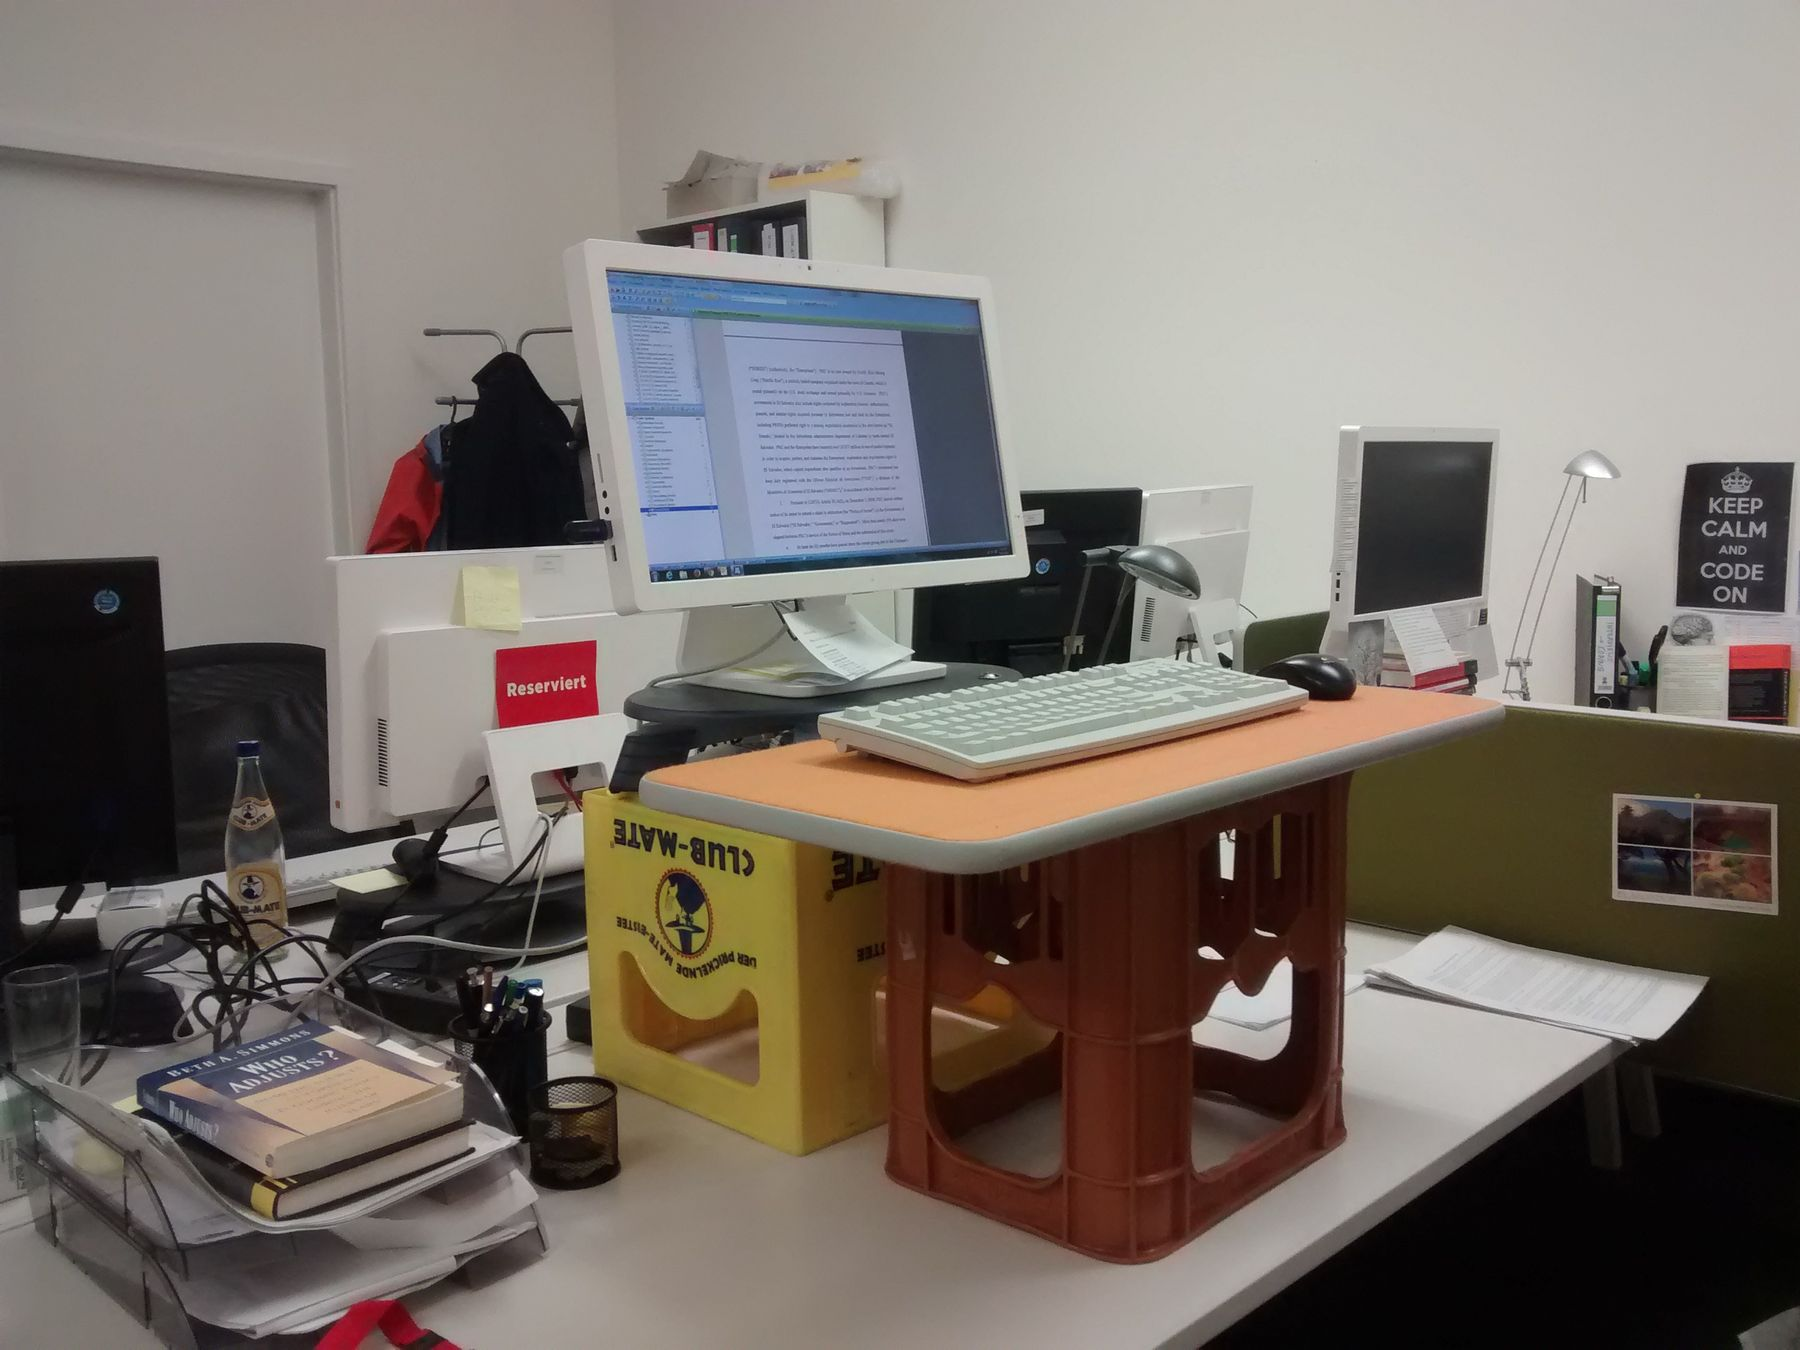 The Diy Standing Desk In Action All You Need Addition To Regular Is Two Crates And A Surface For Mouse Keyboard